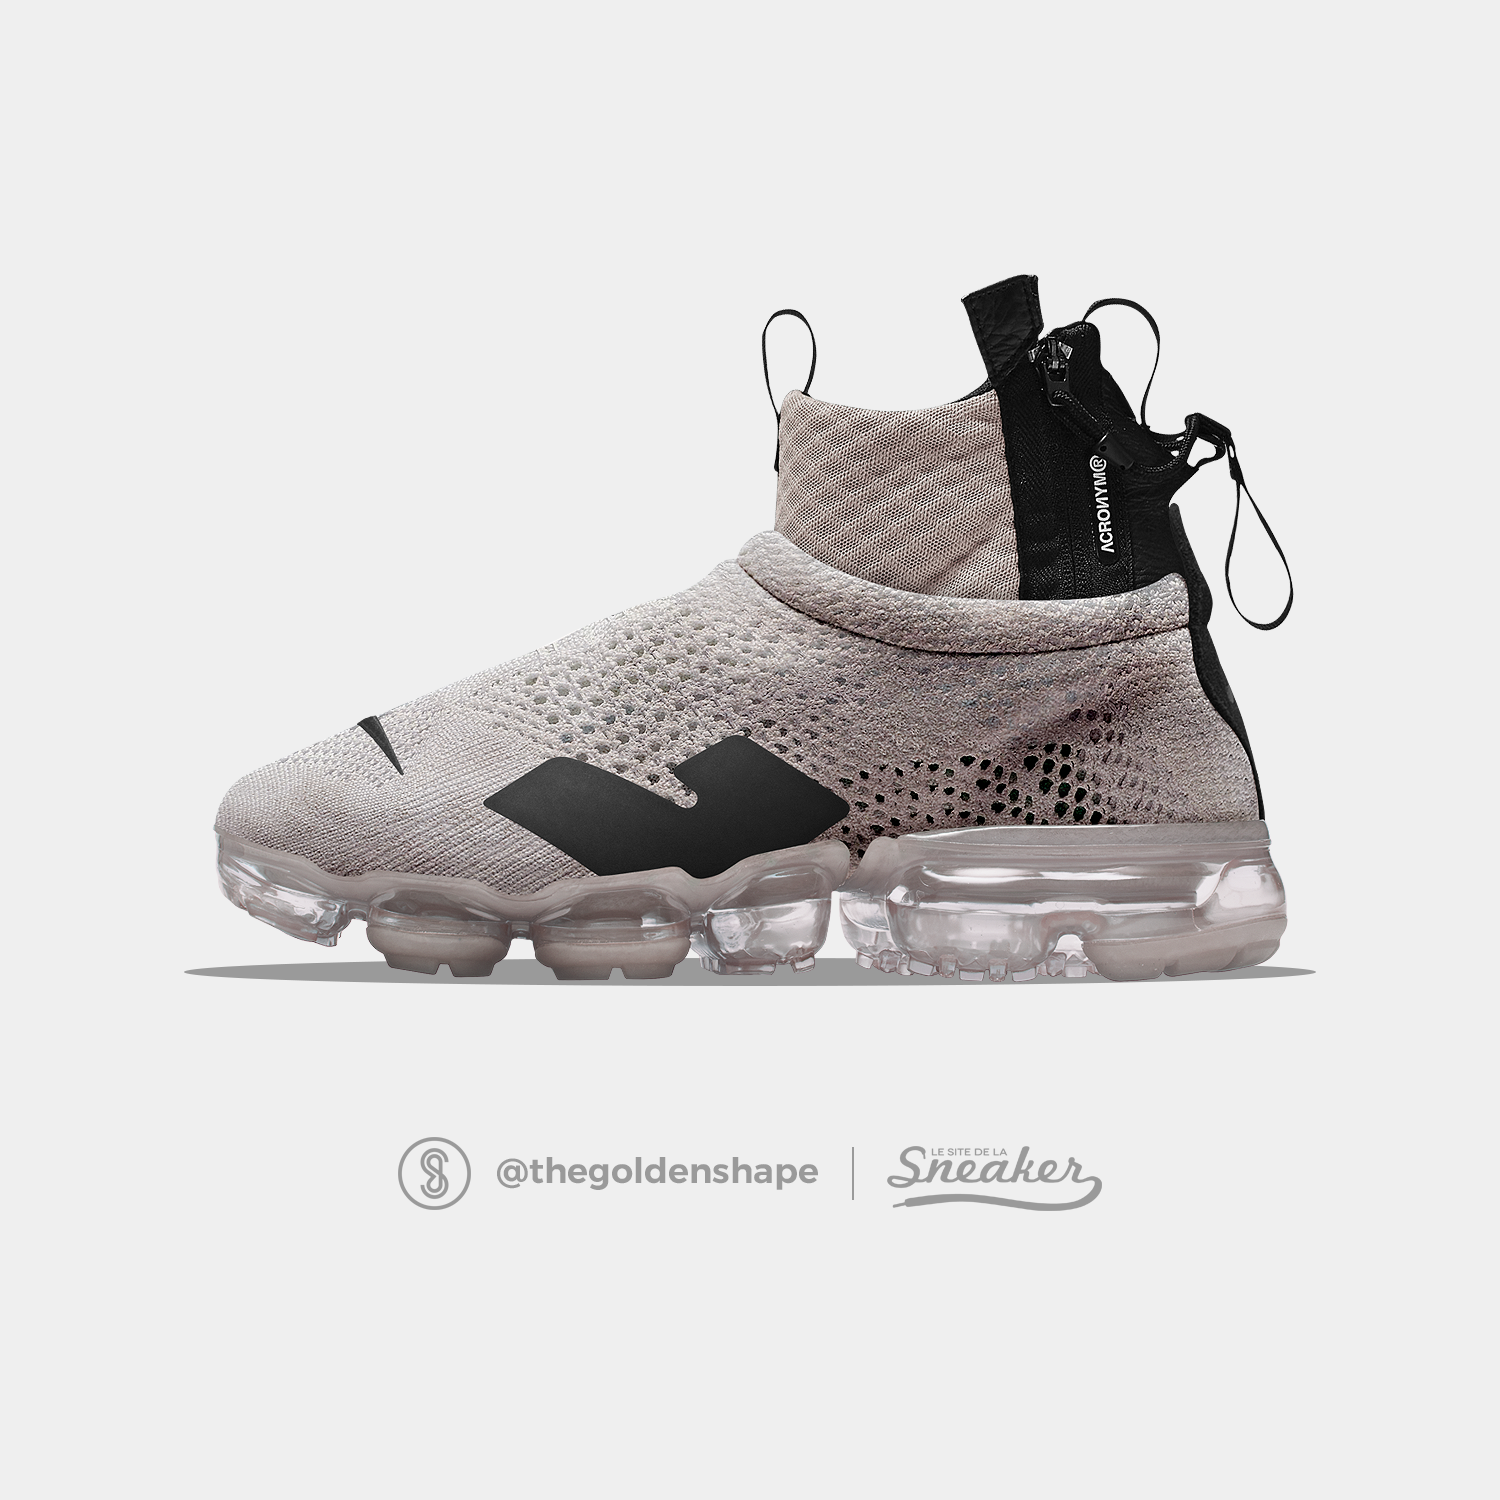 90579a7d8a8 Acronym x Nike Air VaporMax Flyknit Moc Light Bone